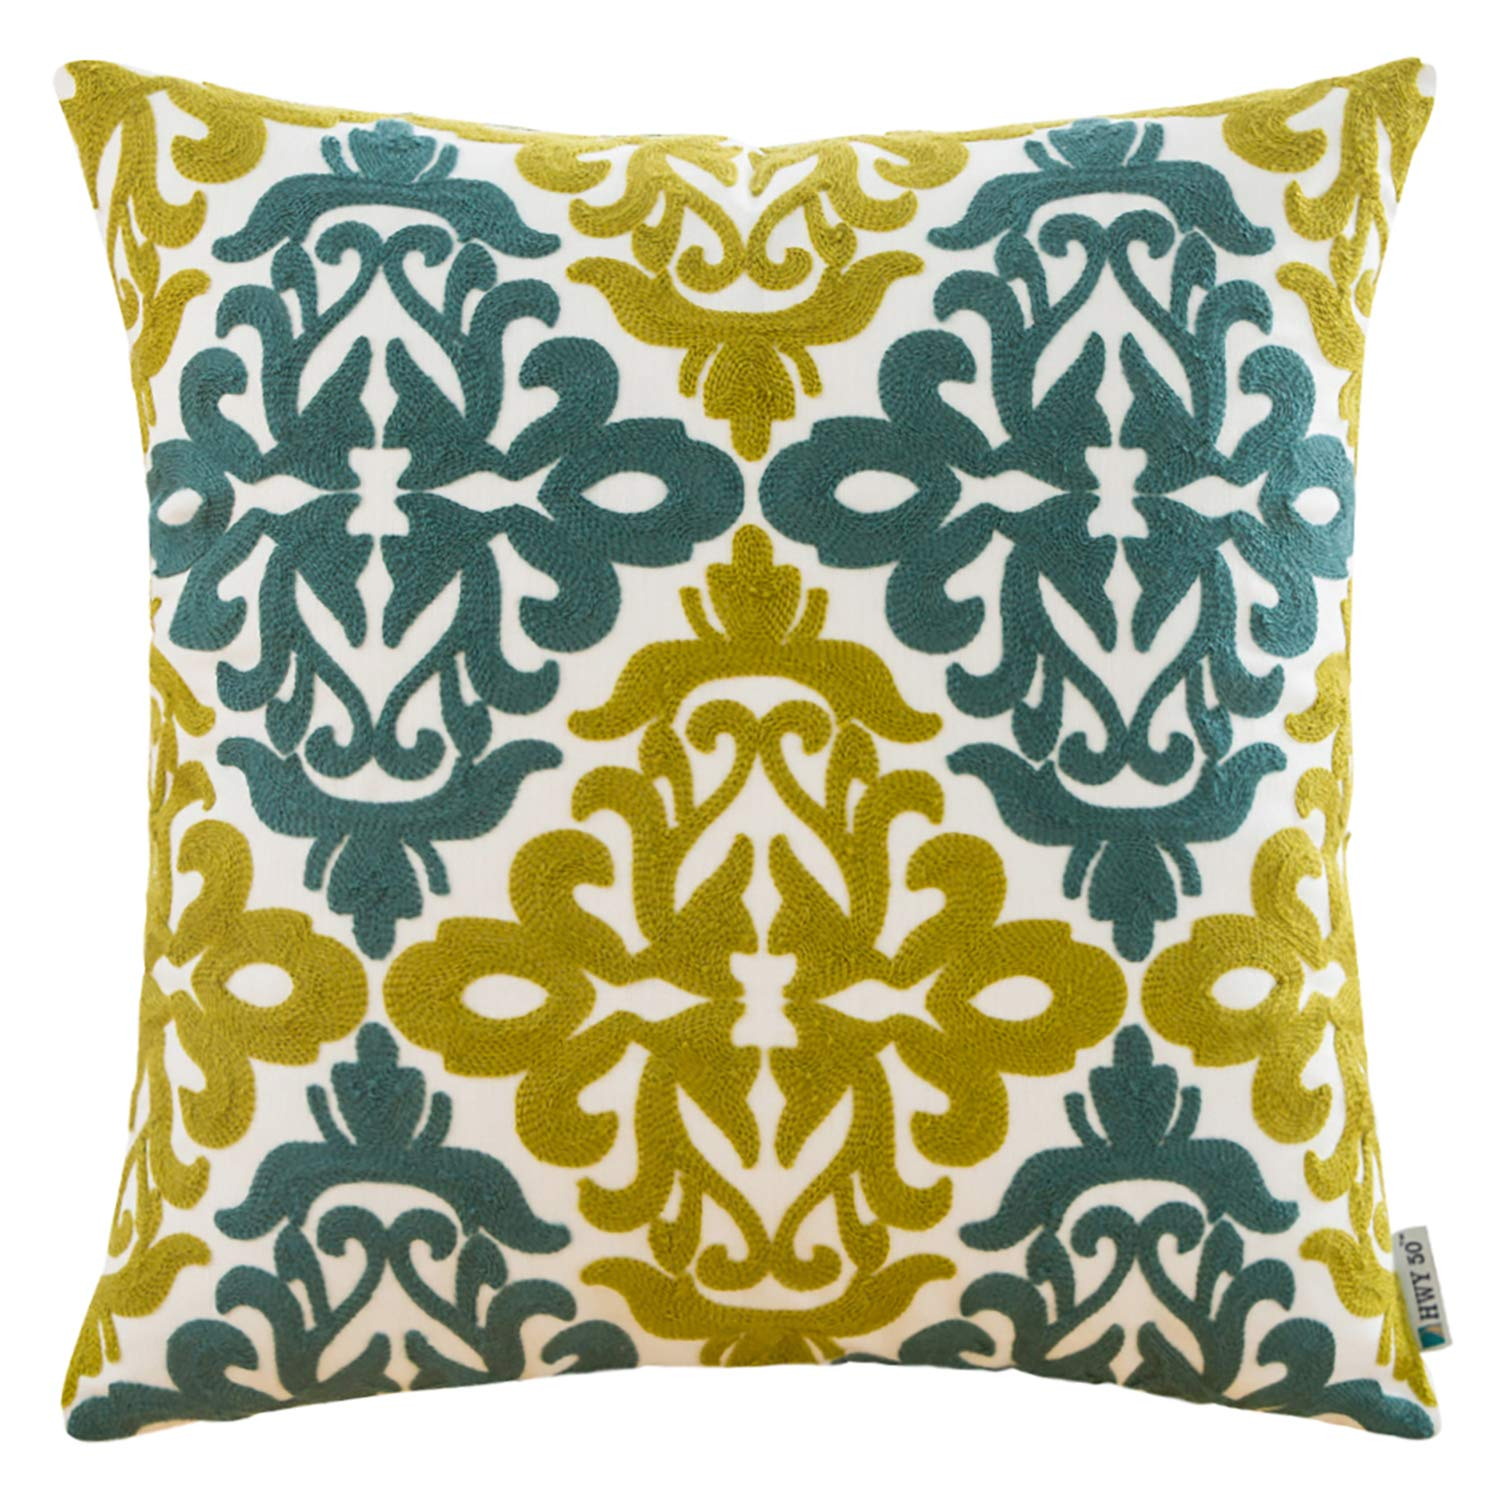 HWY 50 Decorative Embroidered Throw Pillow Covers Cushion Cases for Couch Sofa Living Room 18 x 18 inch Farmhouse Green Blue Floral Geometric 1 Piece